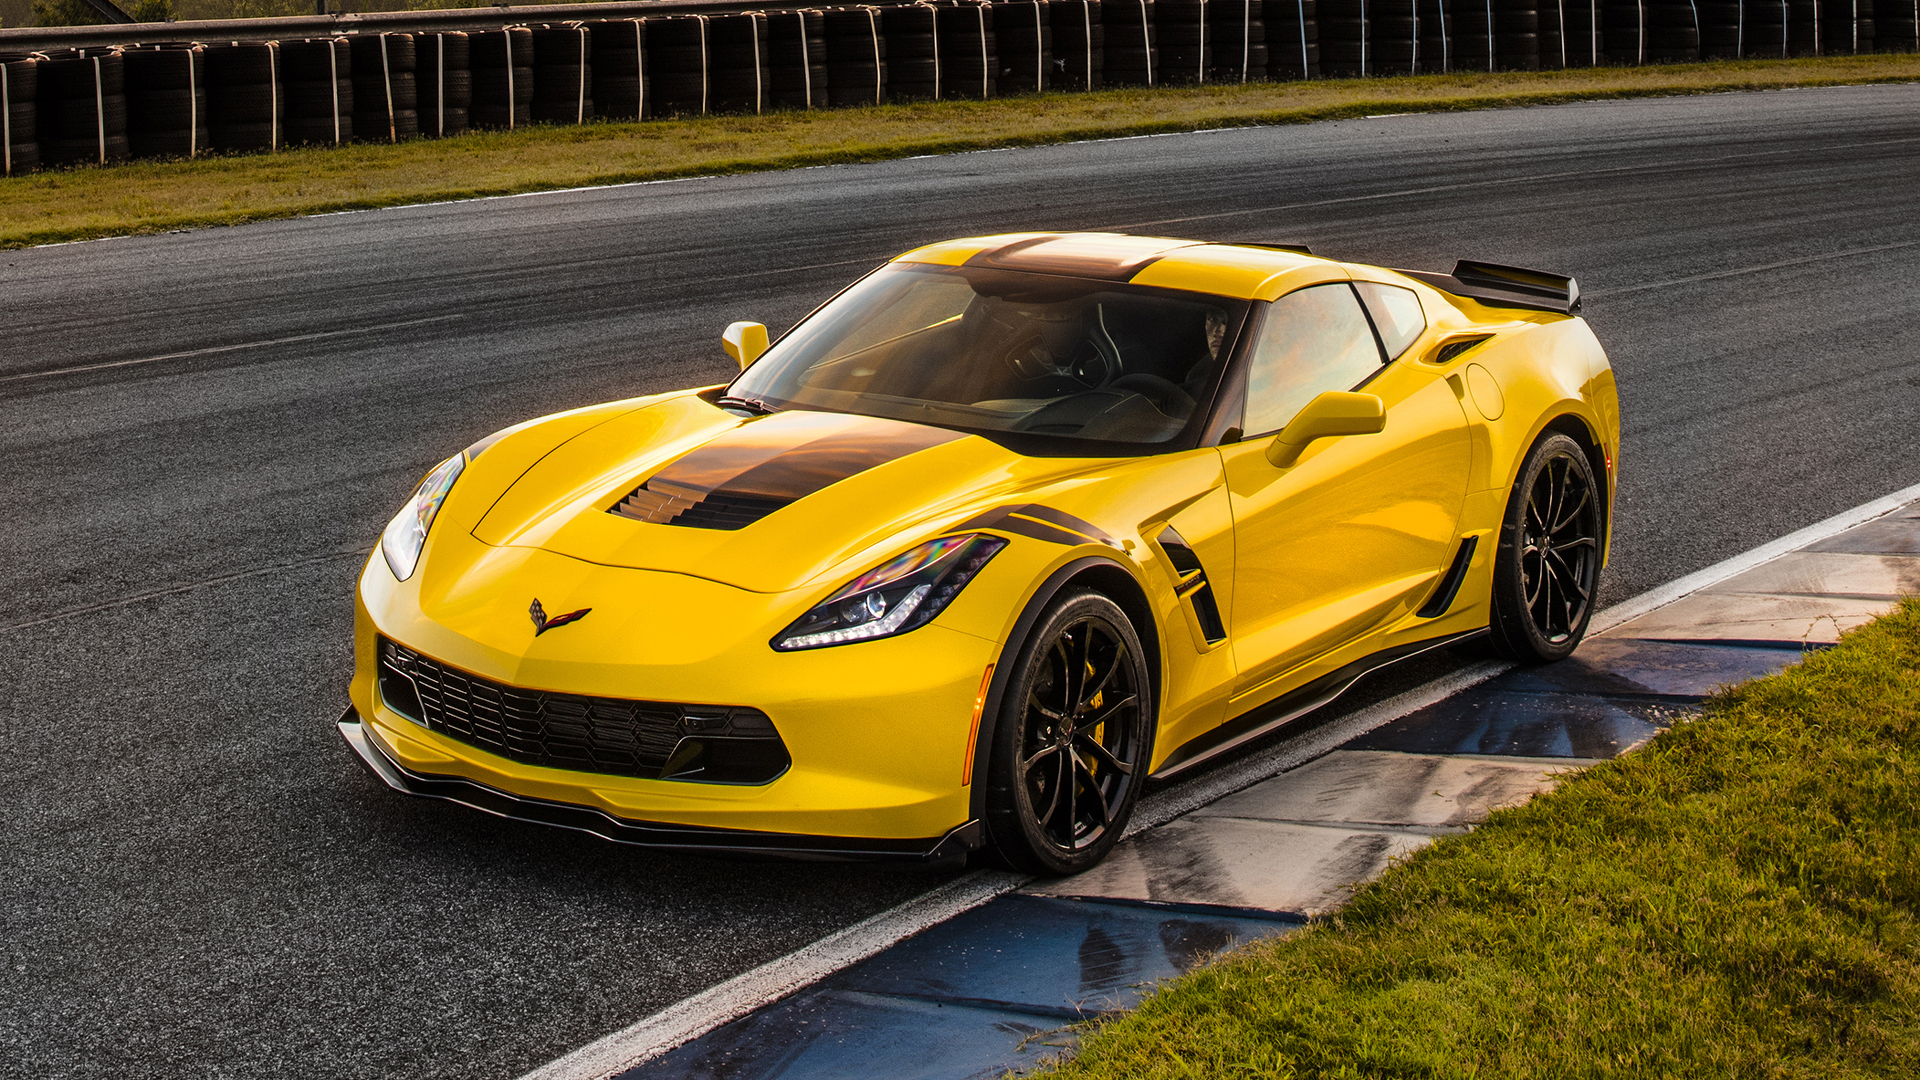 New Chevy Cars >> First Drive: 2017 Chevy Corvette Grand Sport